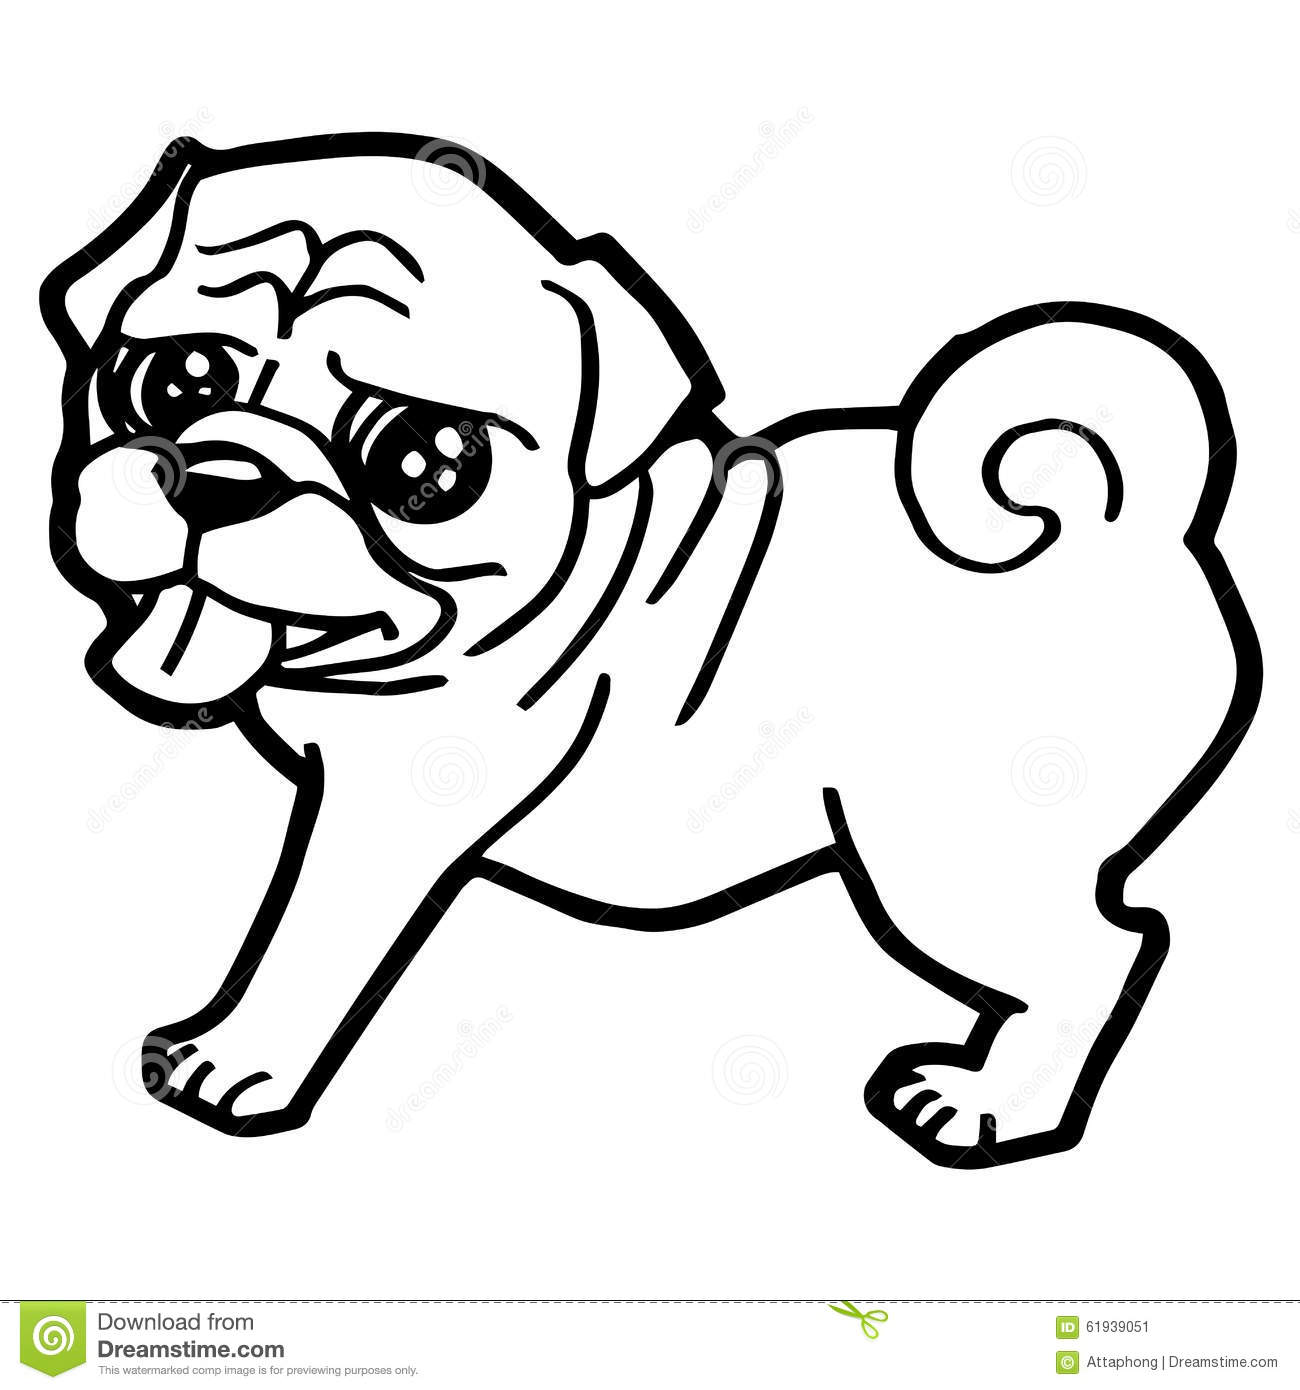 flea coloring page - coloring pictures of cartoon dogs cartoon illustration of